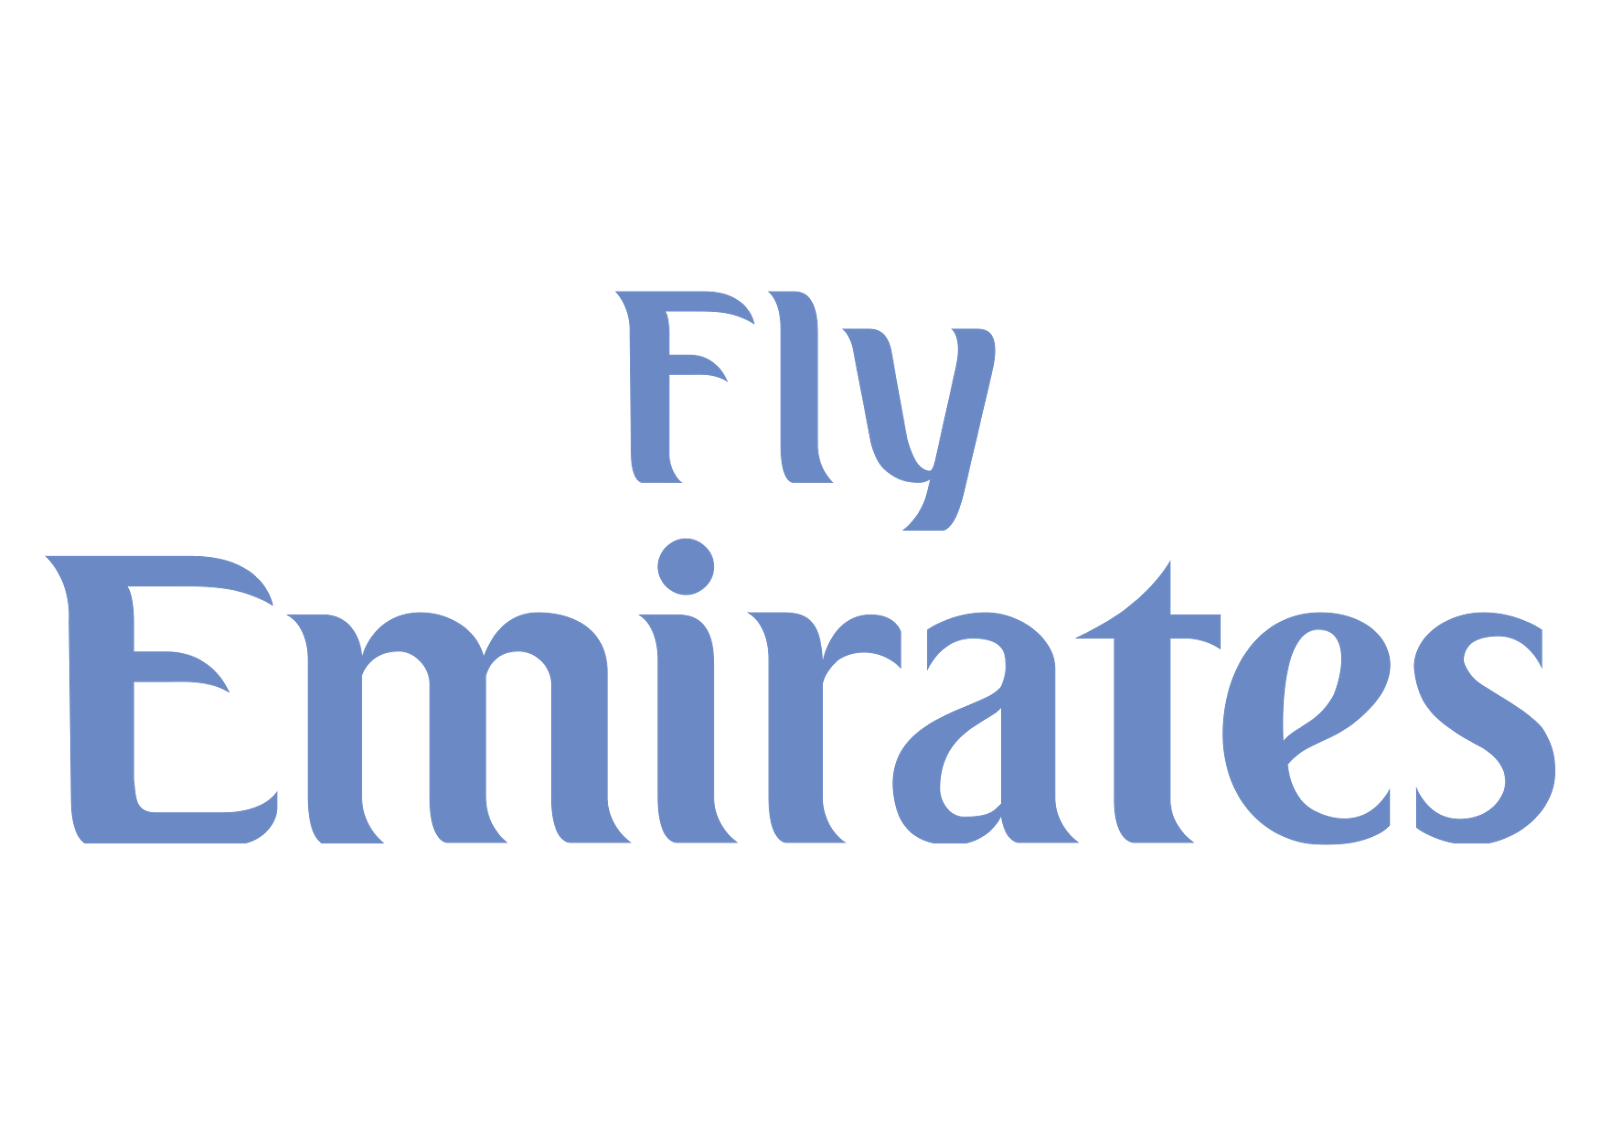 Fly Emirates Logo Vector~ Format Cdr, Ai, Eps, Svg, PDF, PNG